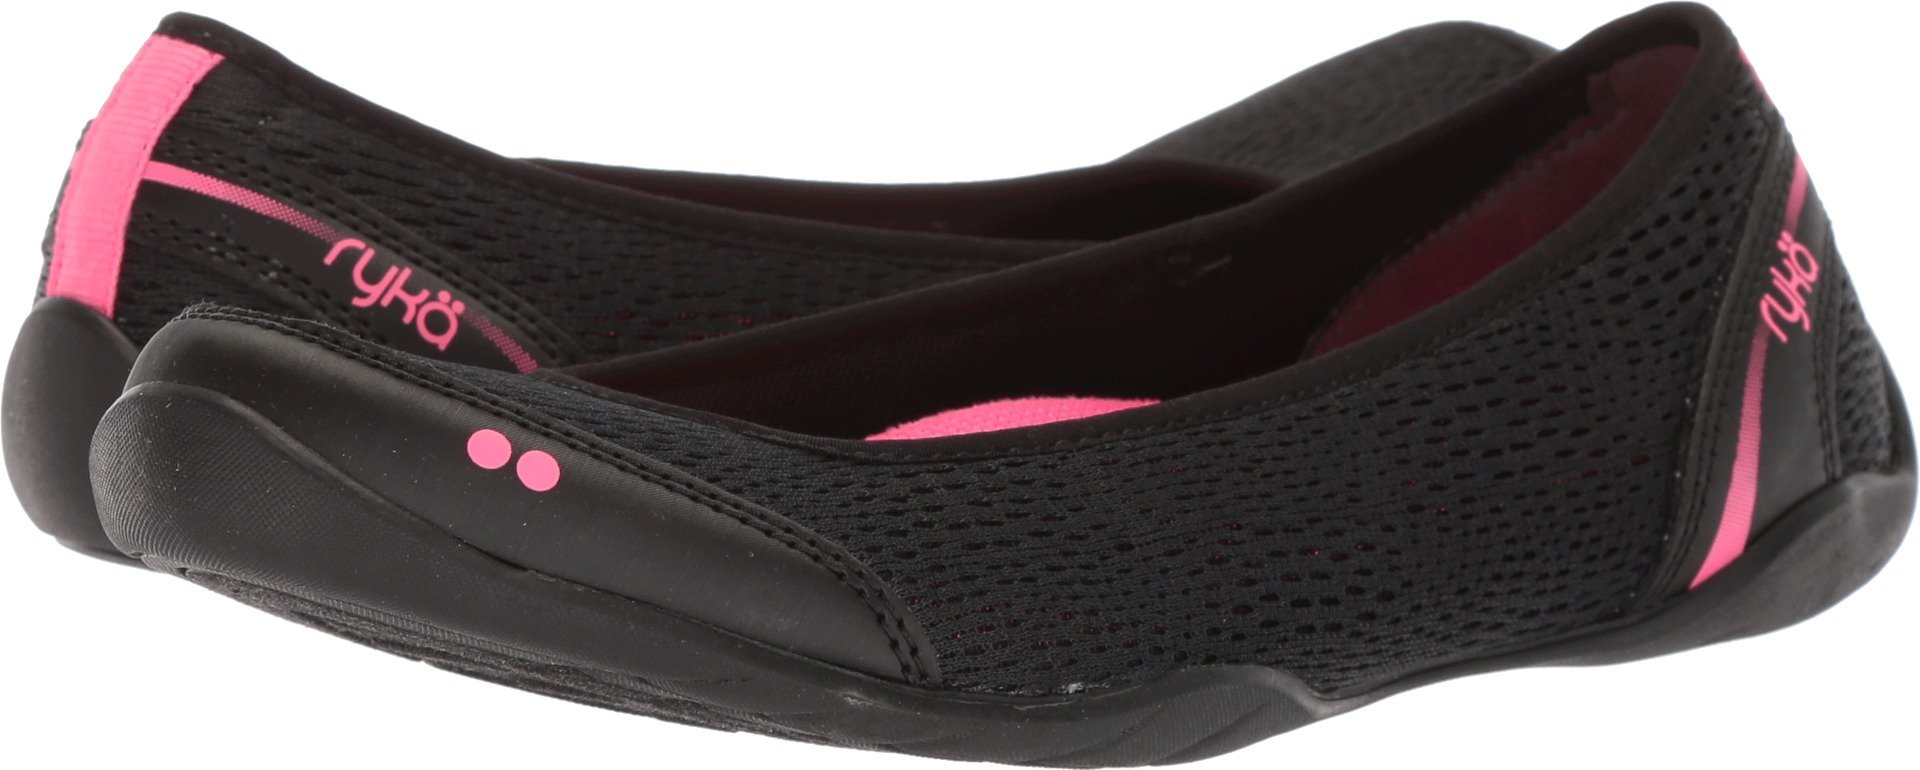 Ryka Women's Sandra Walking Shoe, Black/Pink, 9.5 M US